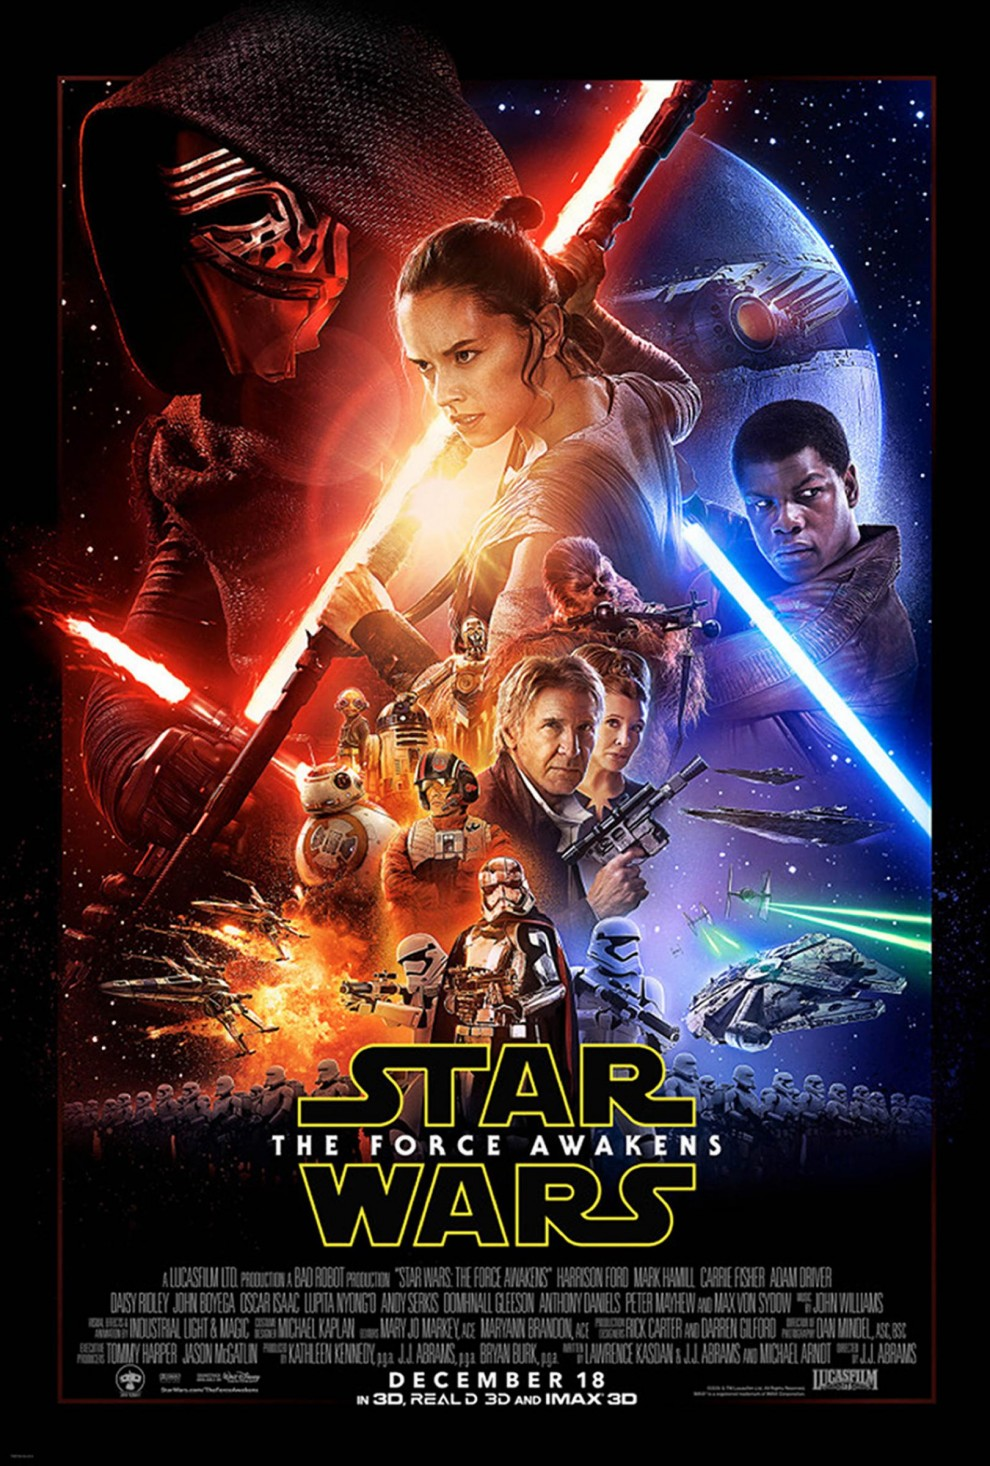 Star War Episode VII: The Force Awakens